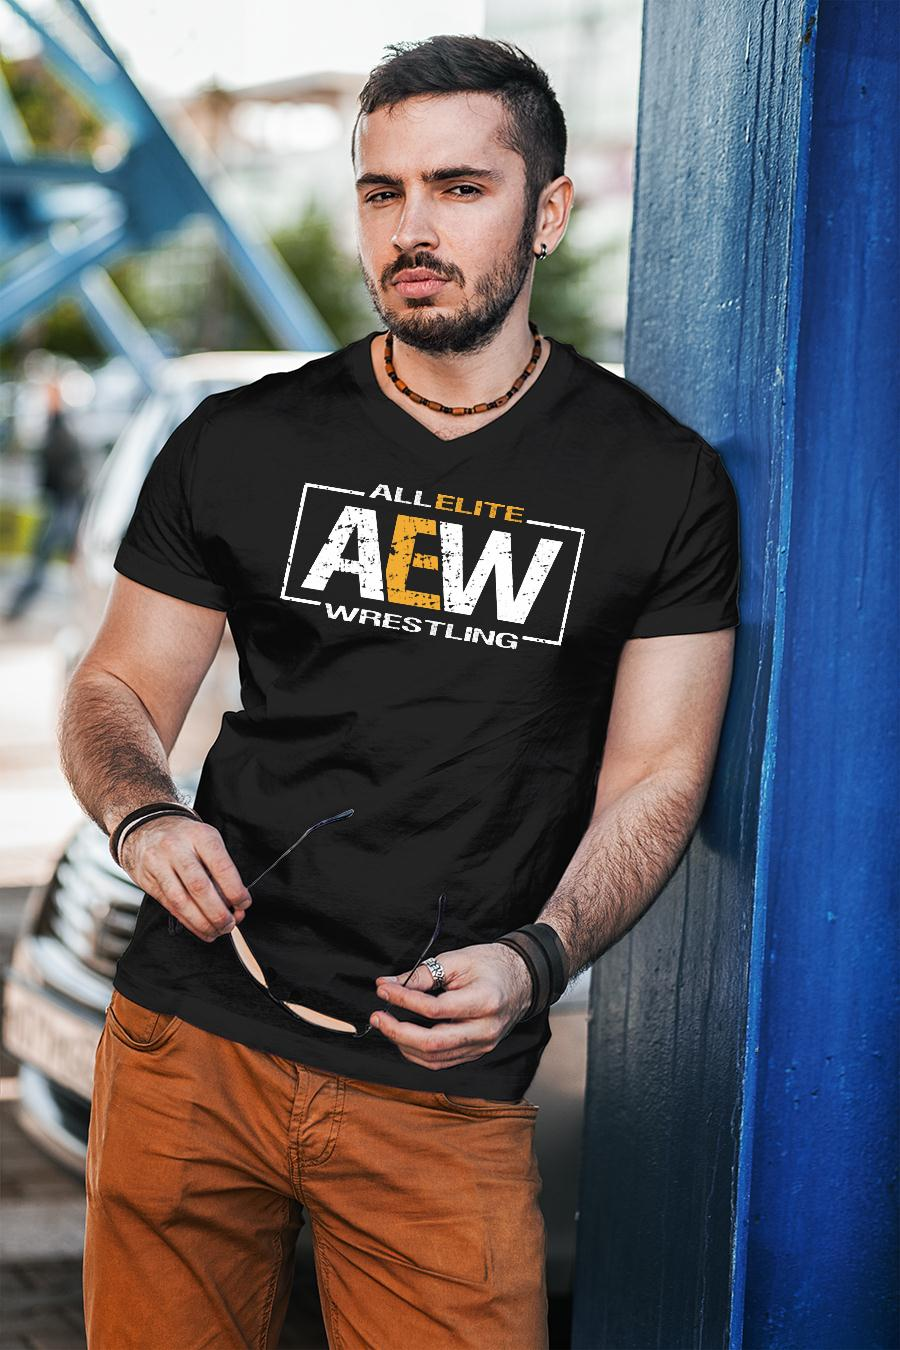 All Elite AEW Wrestling shirt unisex